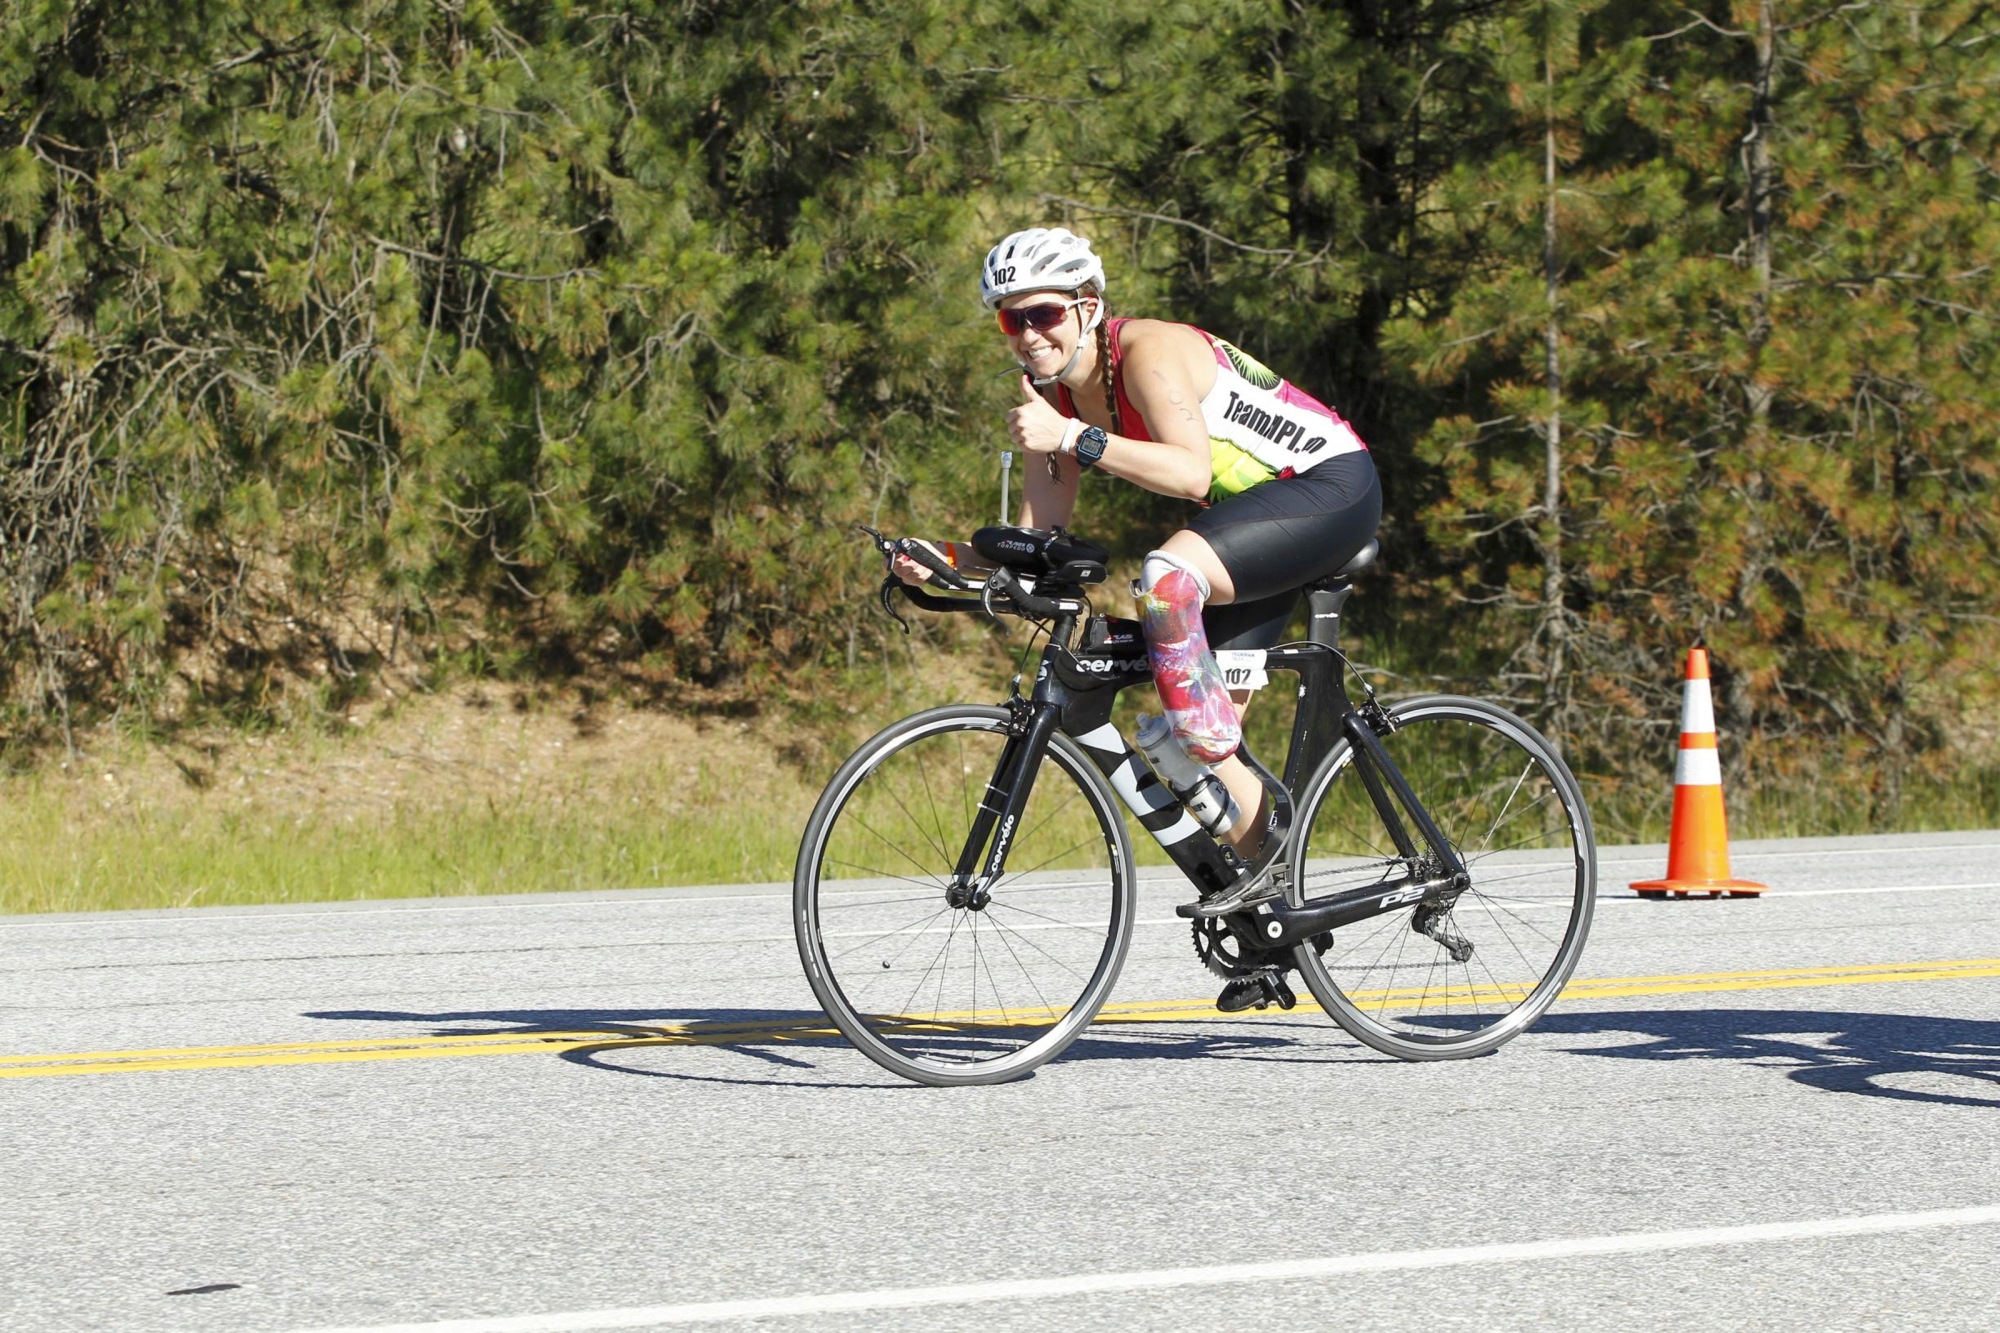 Emily on her bike giving the camera a thumb's up while on course at IM70.3 Coeur d'Alene in June of 2016